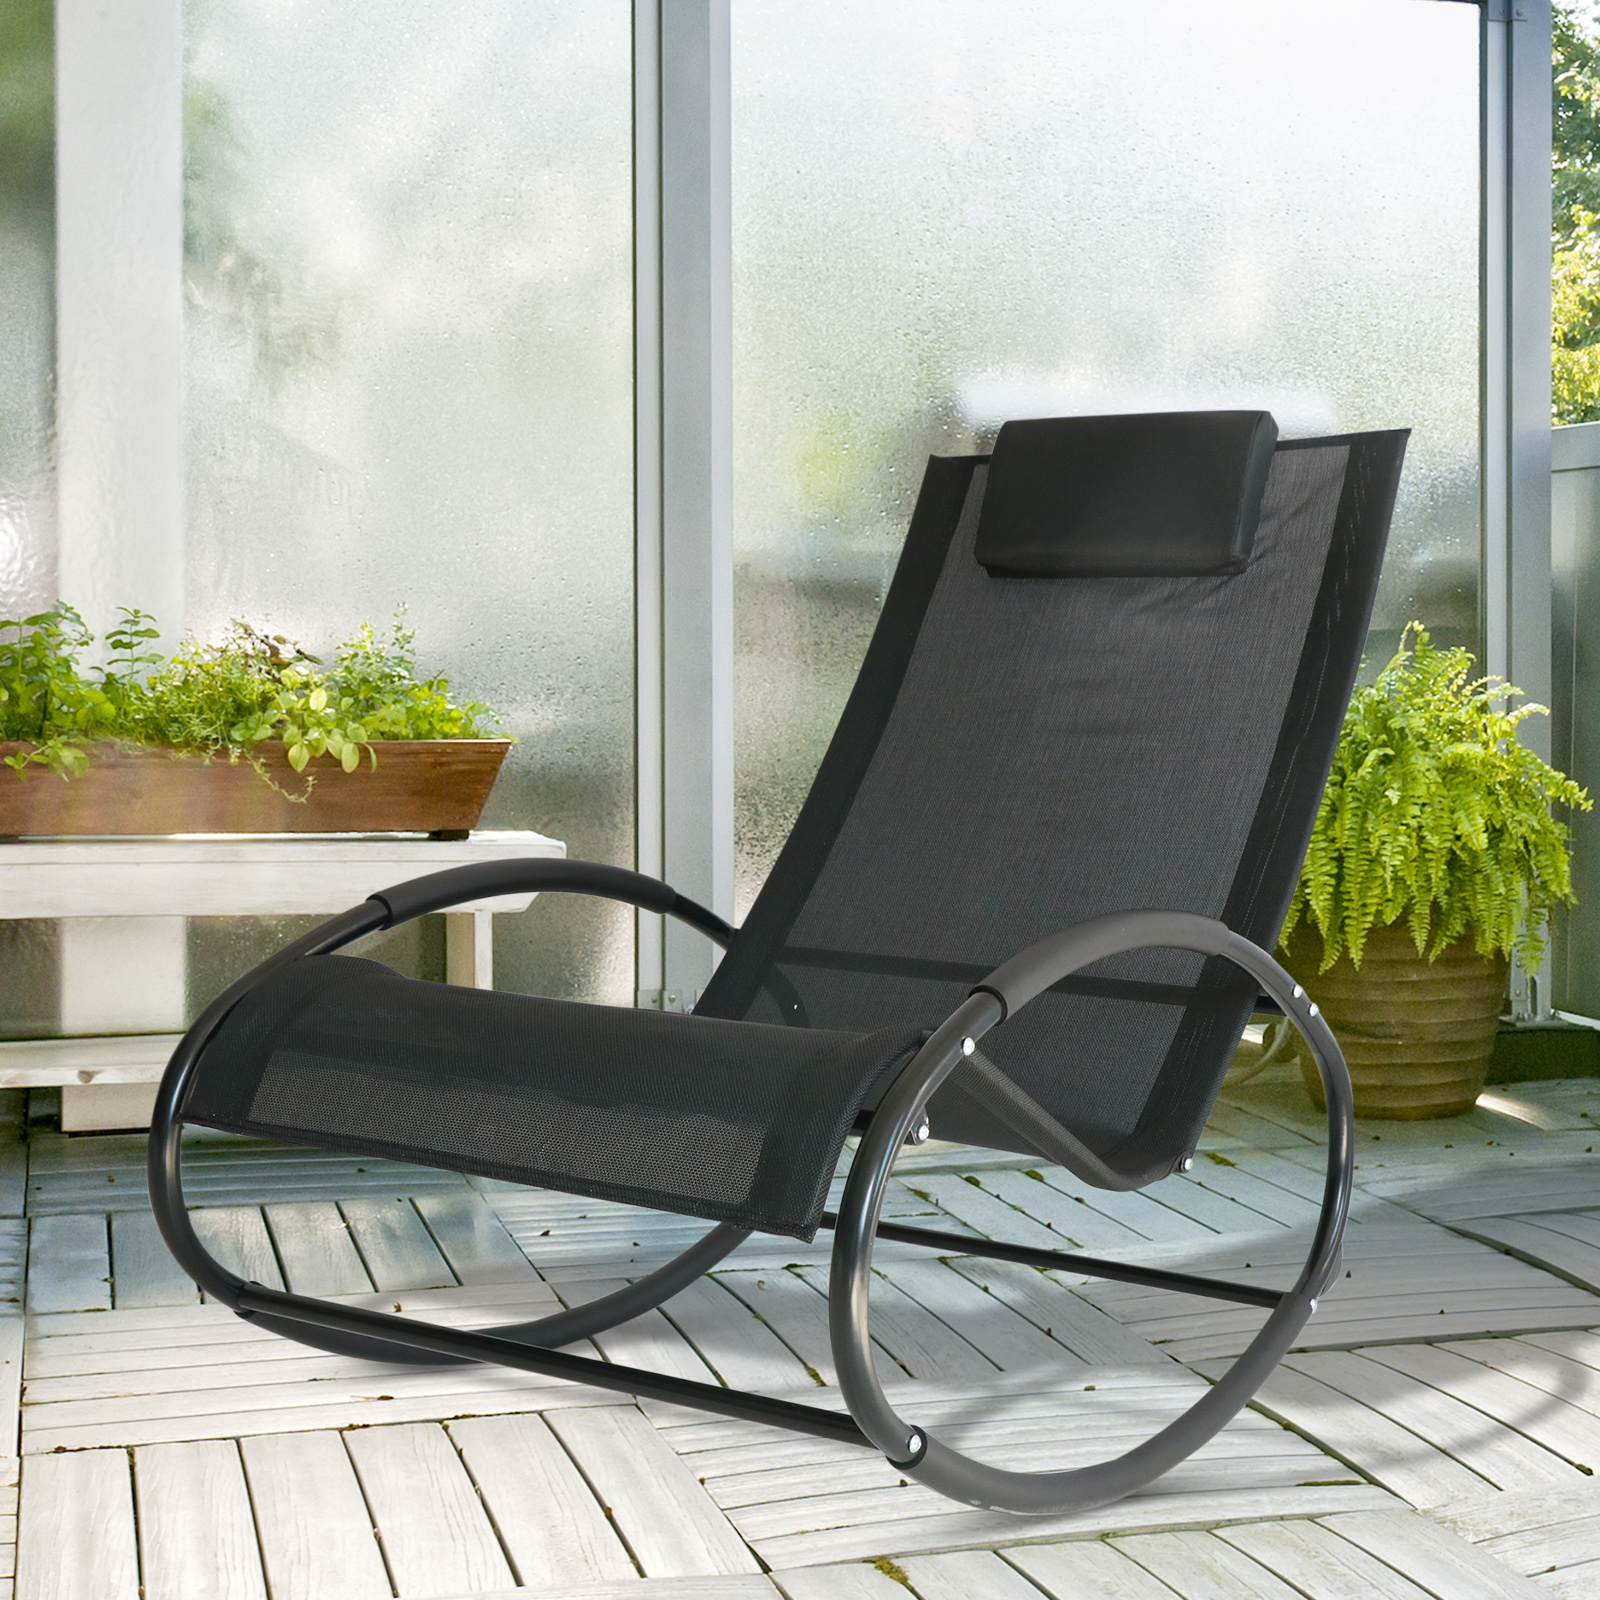 Orbital Patio Lounger Rocking Chairs For 2019 Details About Outsunny Patio Rocking Lounge Chair Orbital Zero Gravity Seat  Pool Chaise W/ (View 11 of 25)